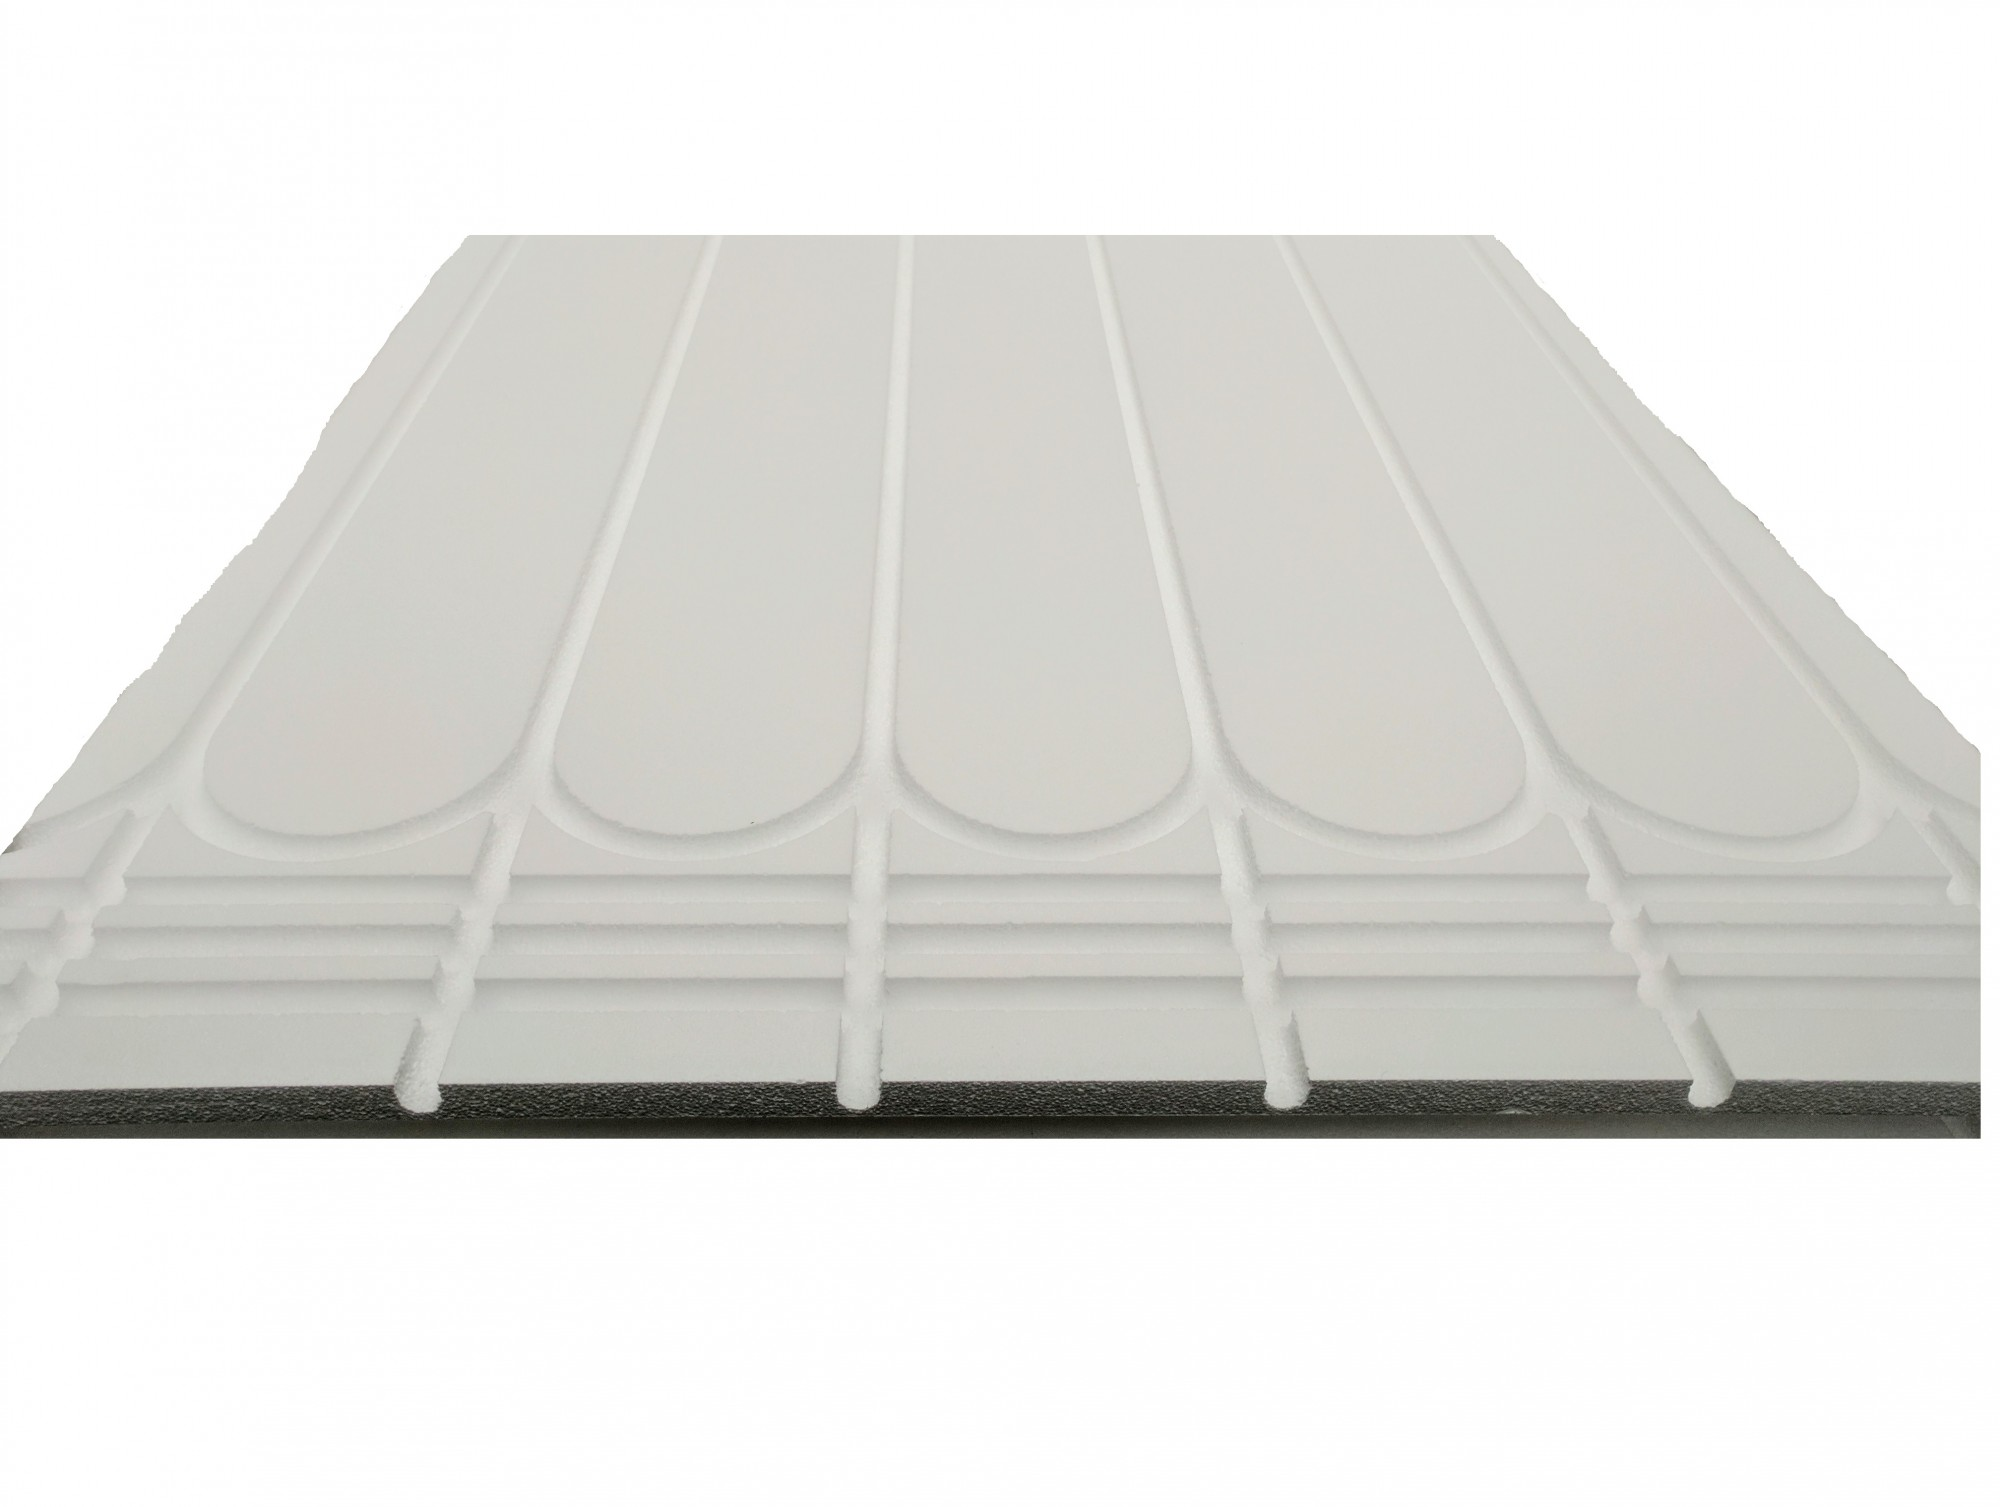 Image 1 of Floating Floor Panel 1200x1200mm For 16mm Pipe